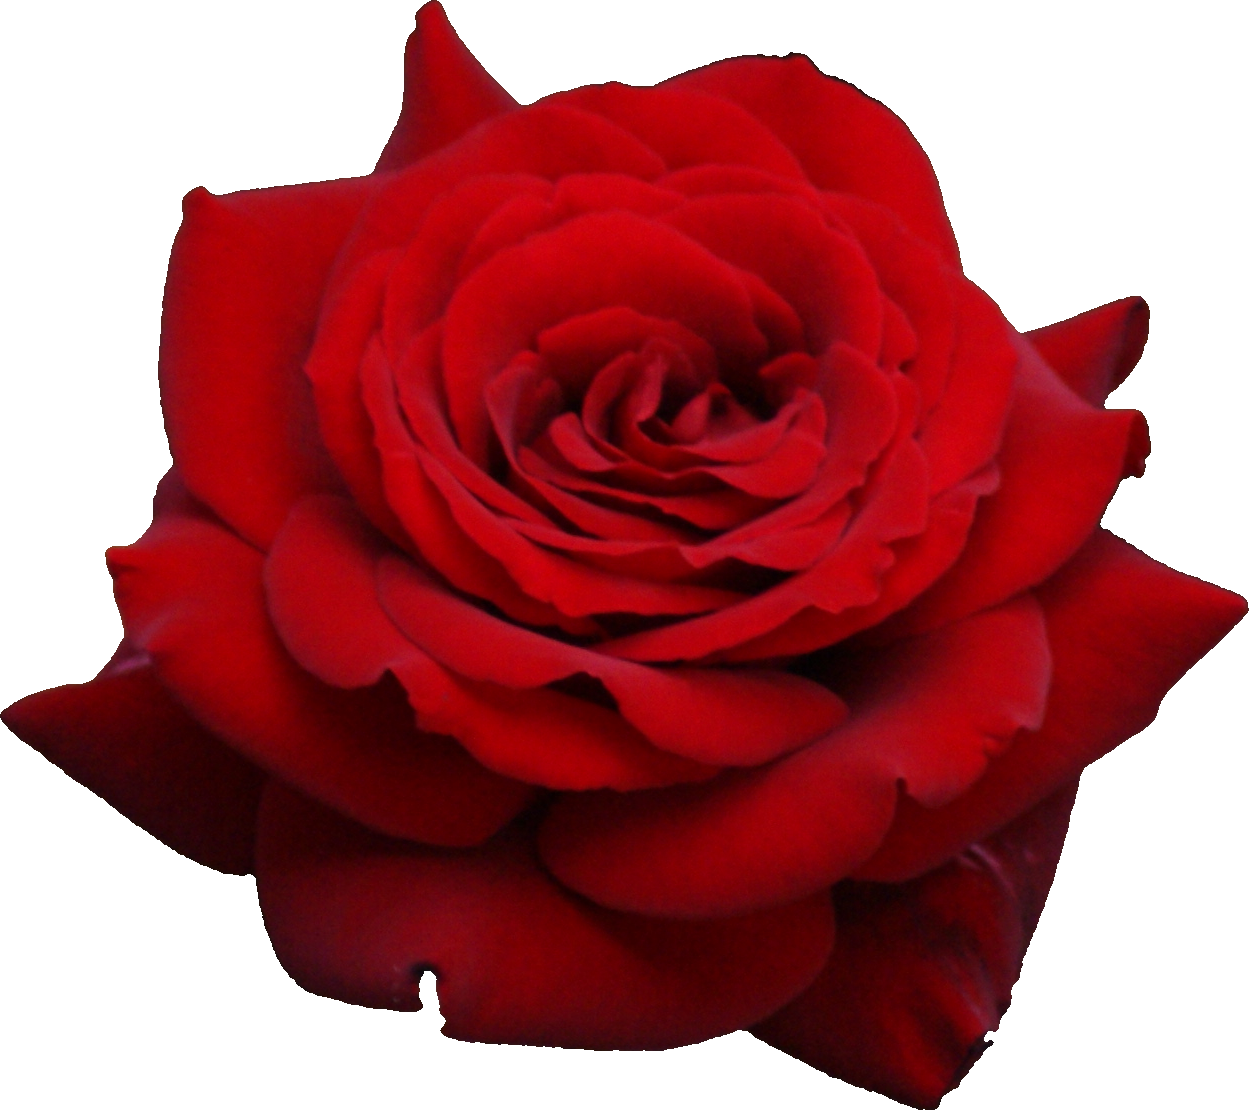 PNG File Name: Rose PlusPng.c